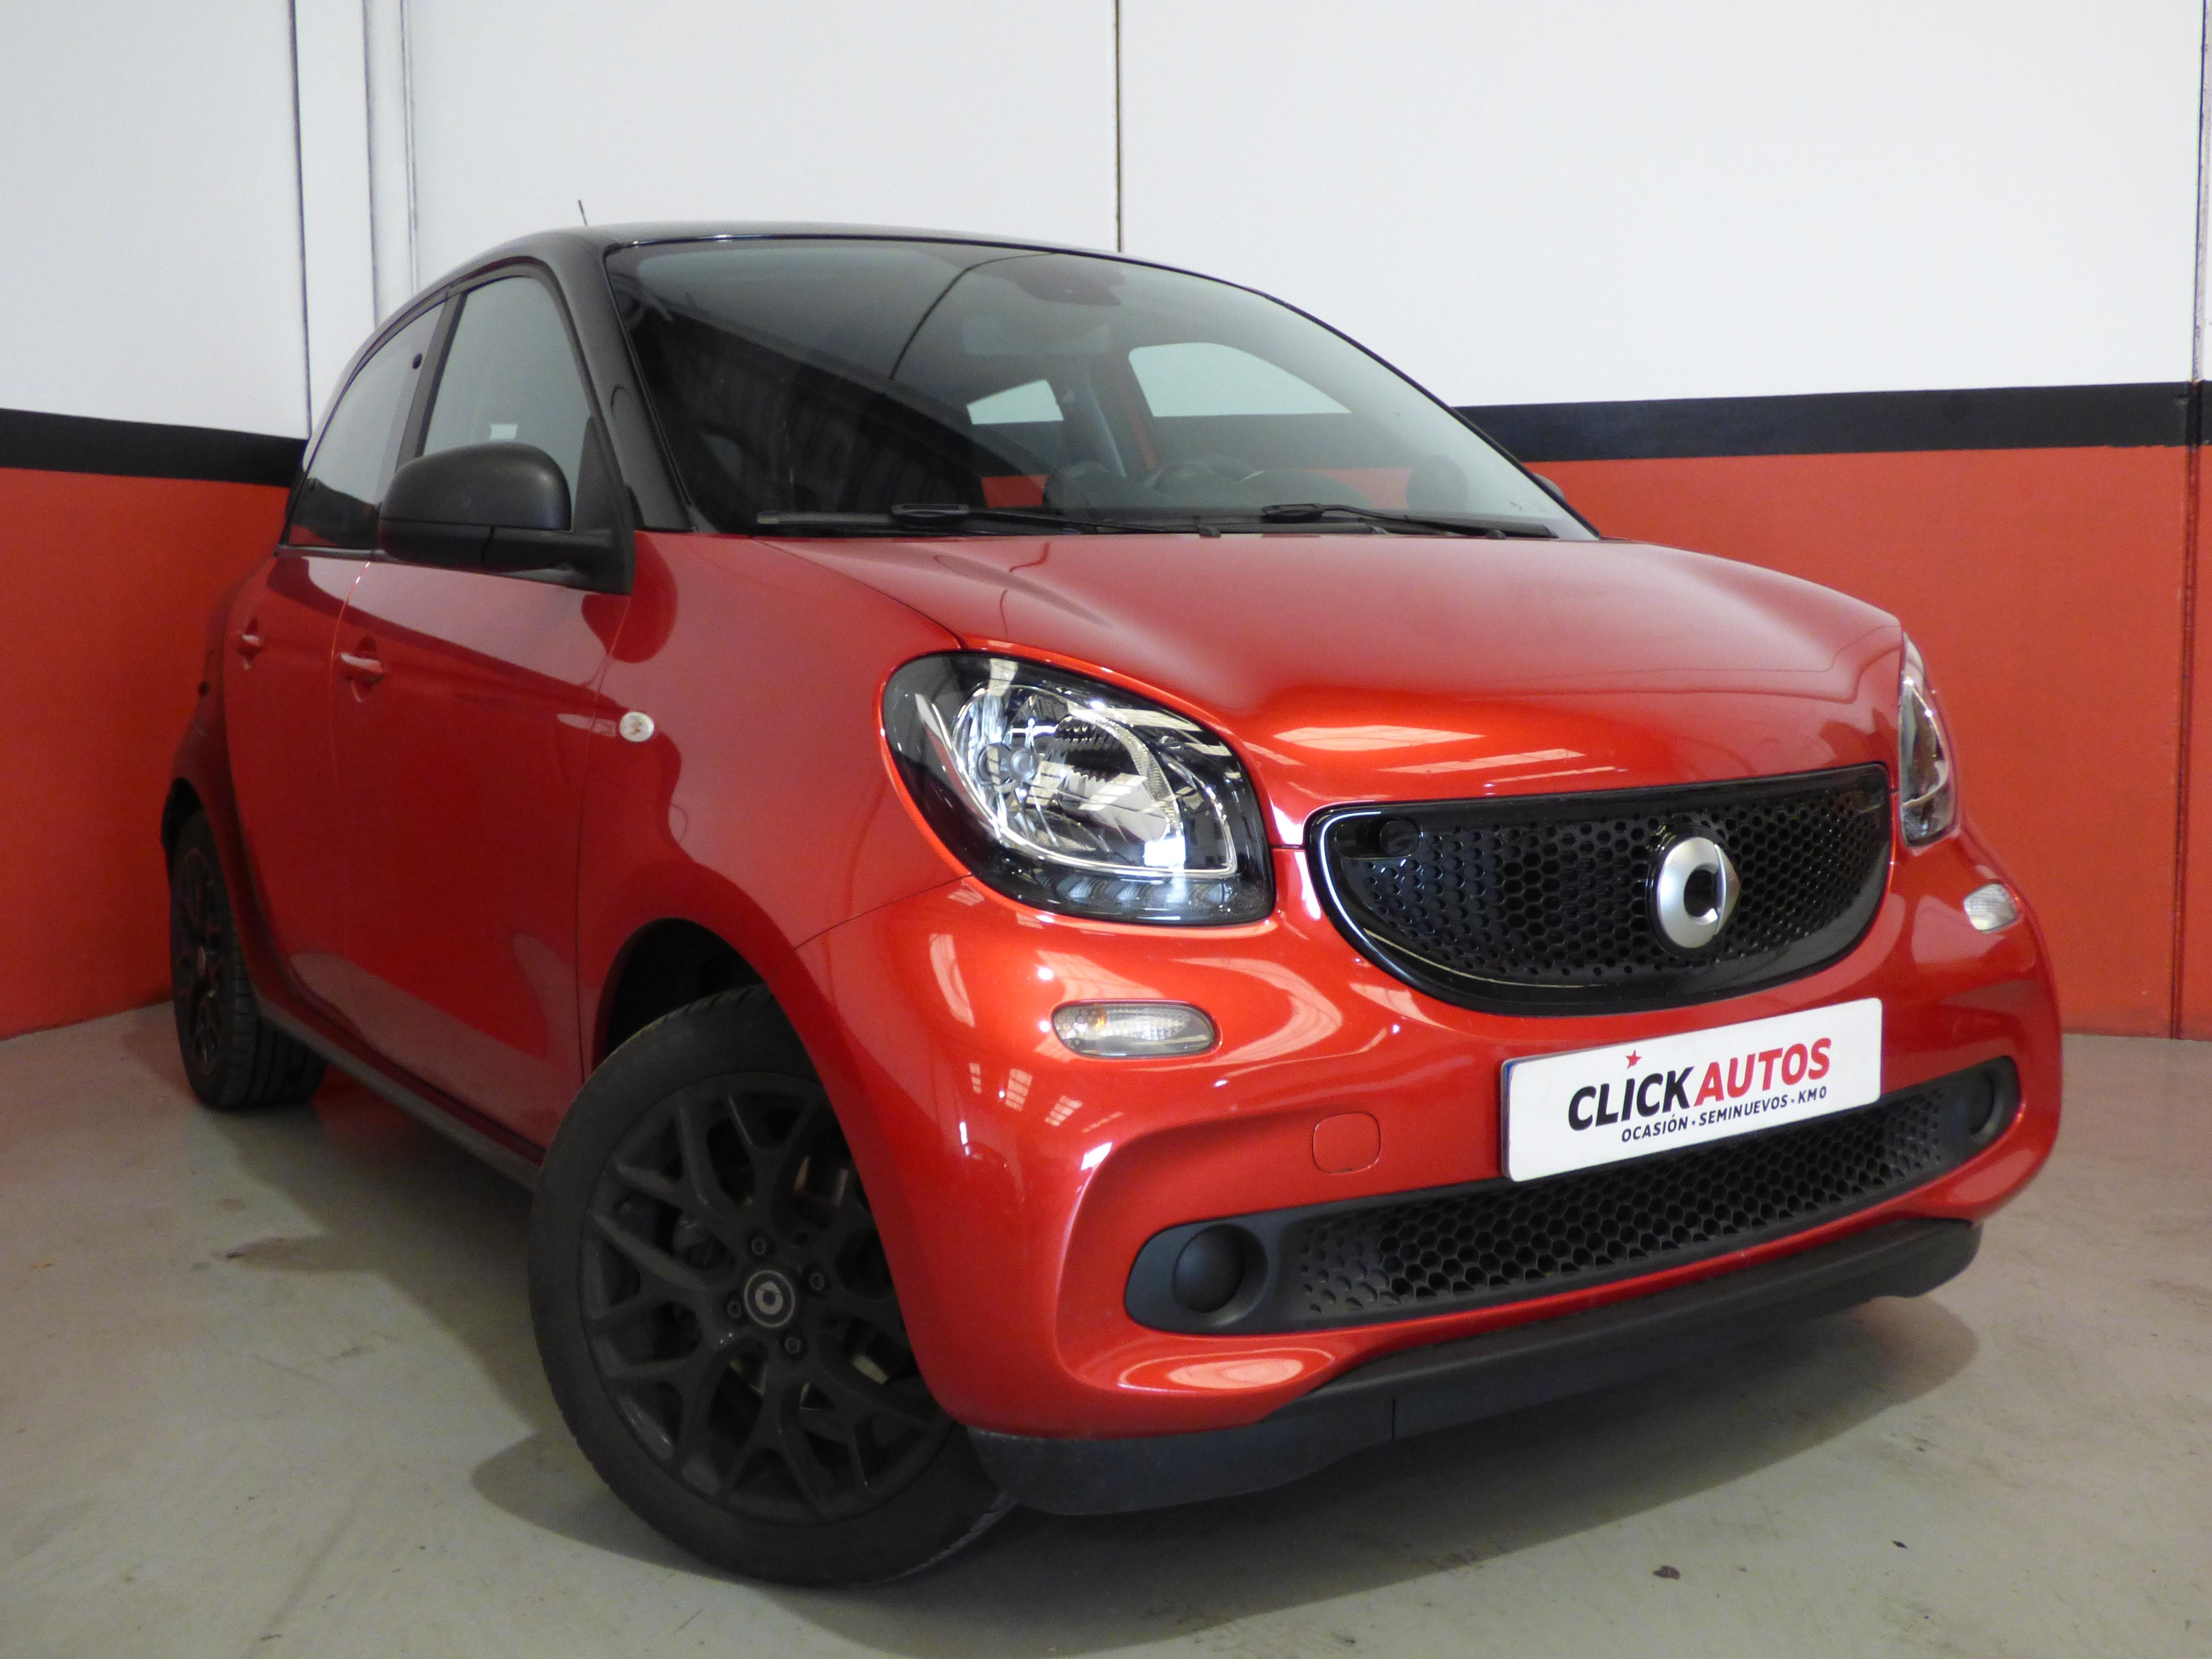 Forfour 0.9 Turbo 90CV Automatico Passion 19